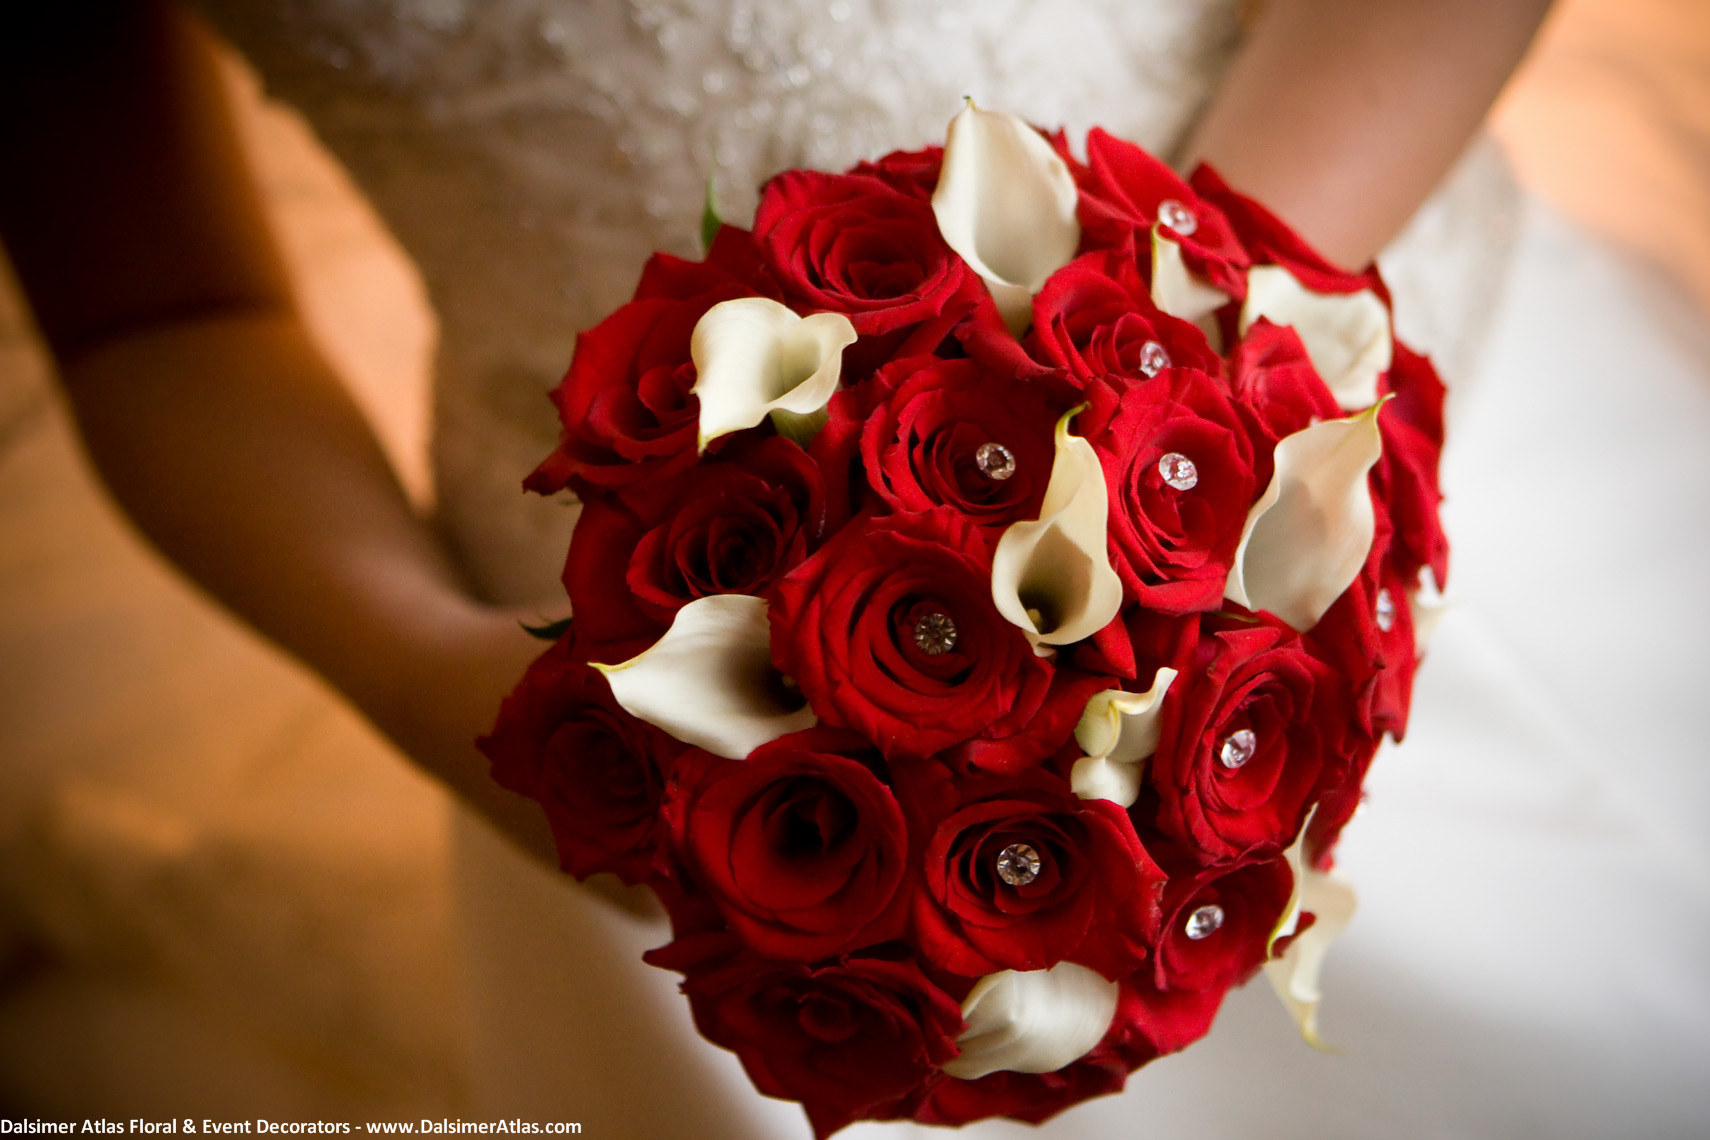 Bridal Bouquet Red Roses White Calla Lilies